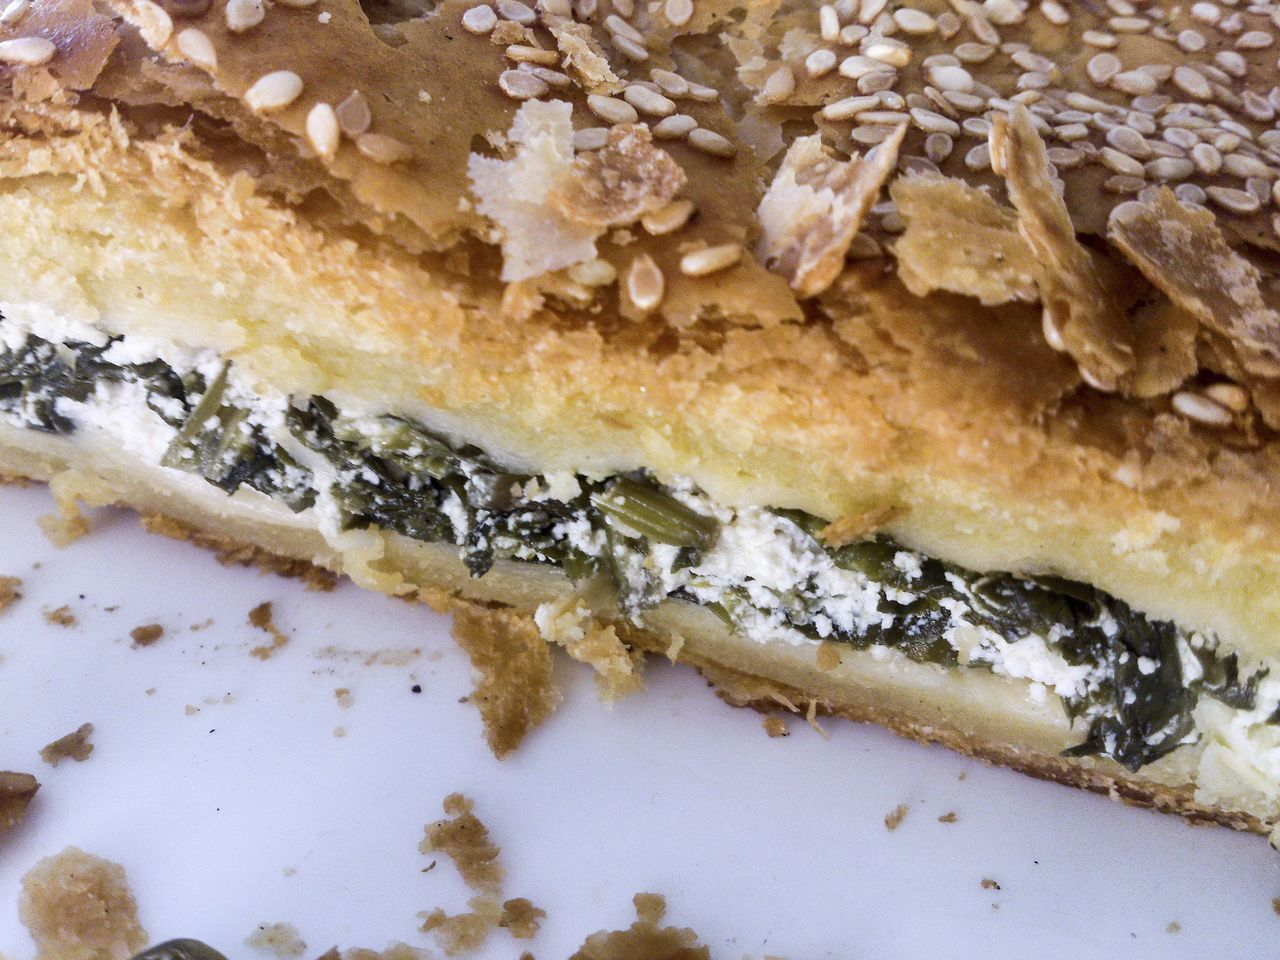 Spanakopita. Greek Feta and Spinach Pie Appetizer Close-up Cuisine Delicious Food Feta Feta Cheese Filó Greece Greek Healthy Healthy Food Mediterranean  No People Pastry Pie Snack Spinach Tasty Traditional Vegetarian Food